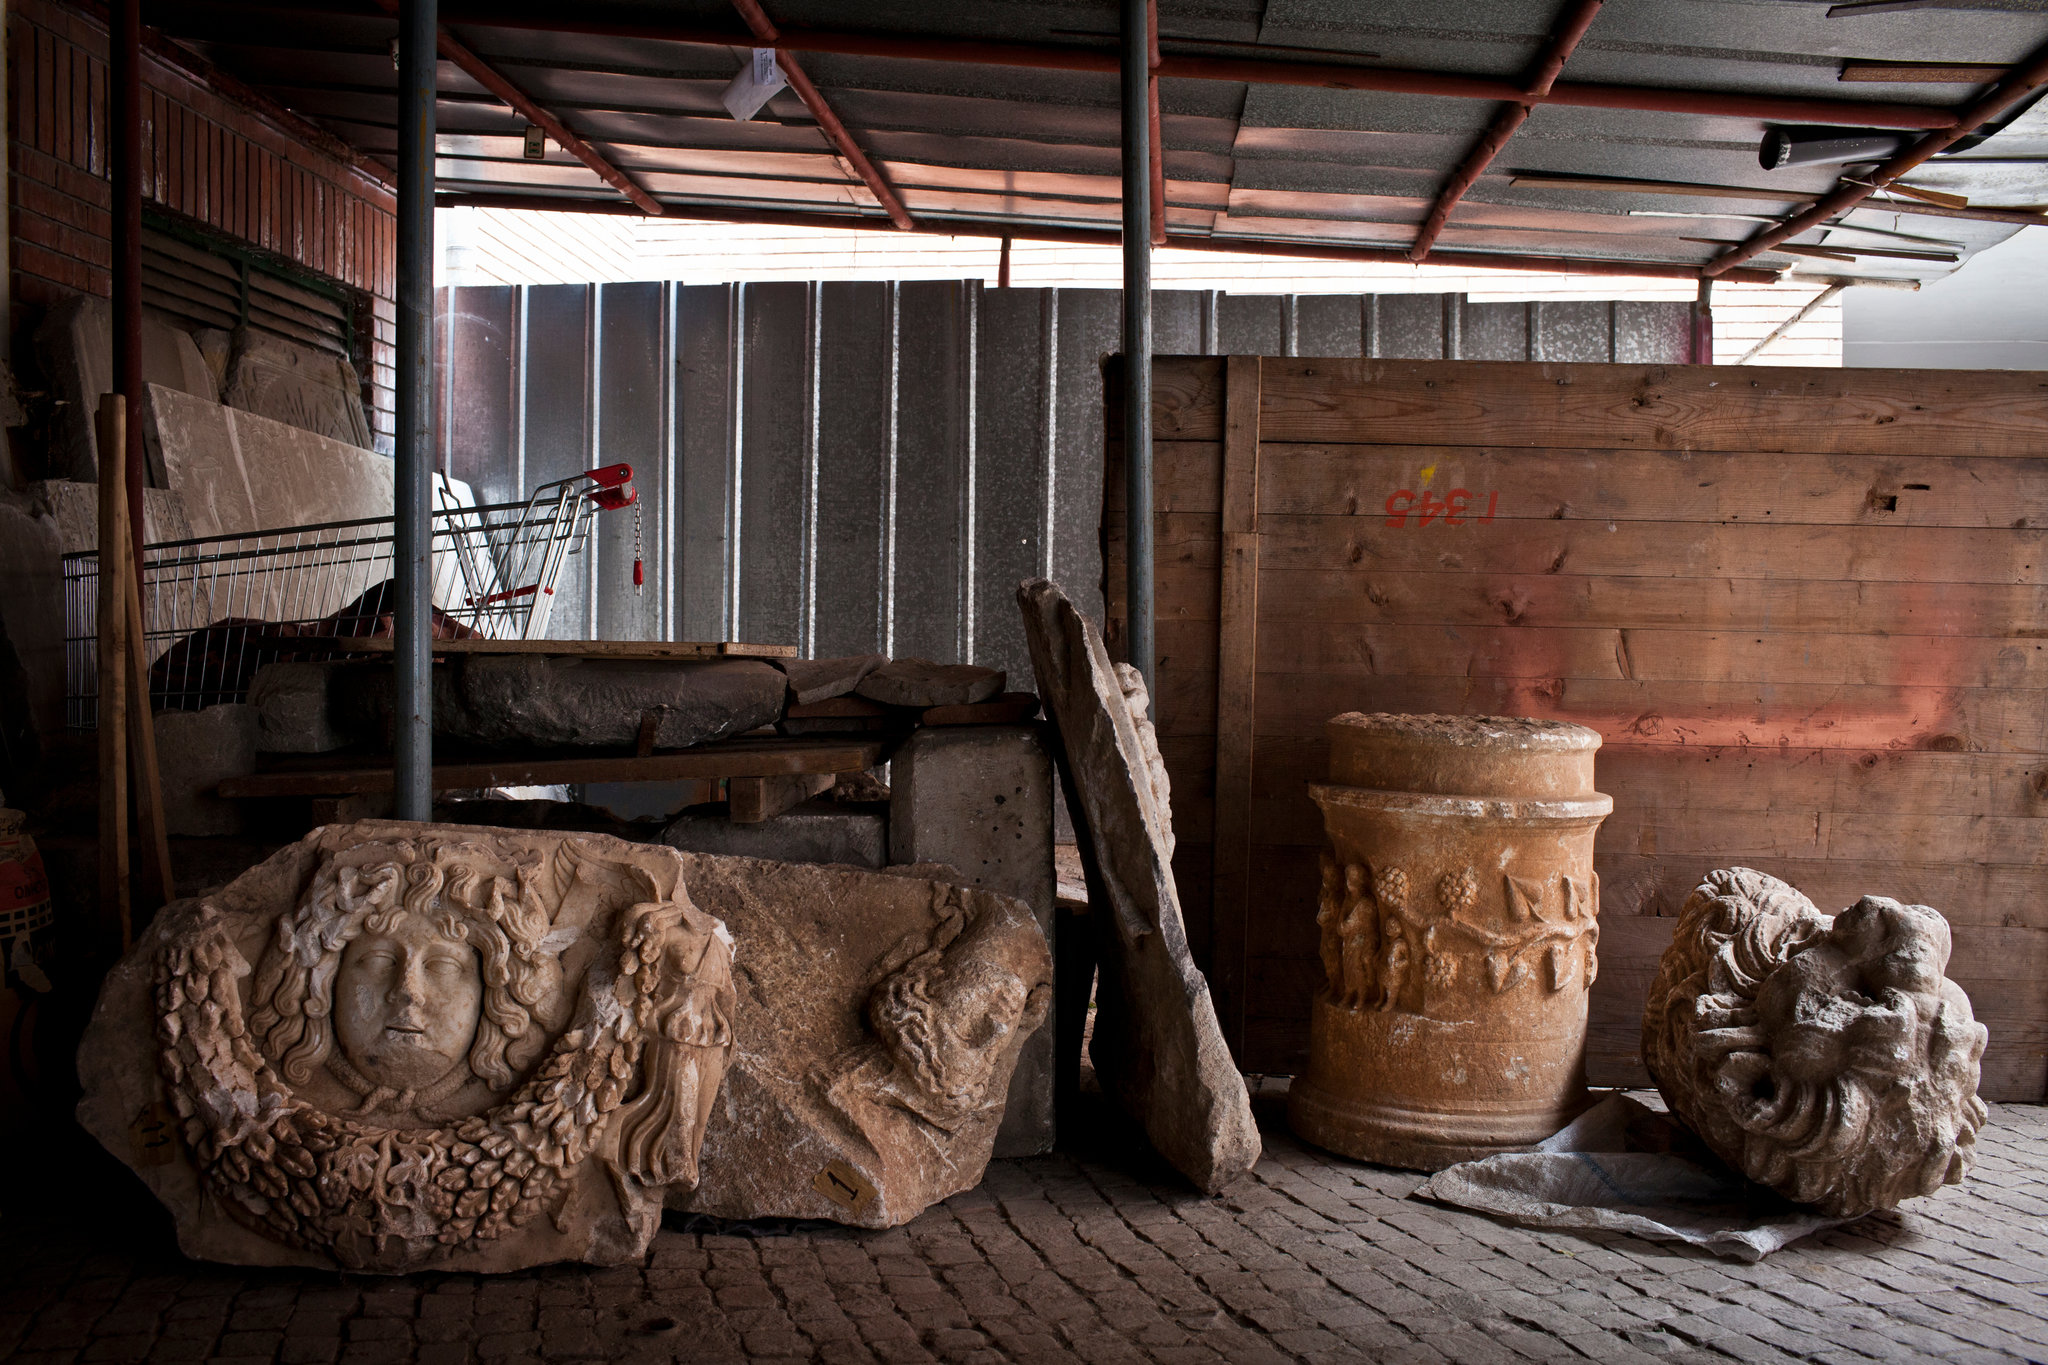 Artifacts from the ancient Sumerican city of Lagash, in northern Iraq